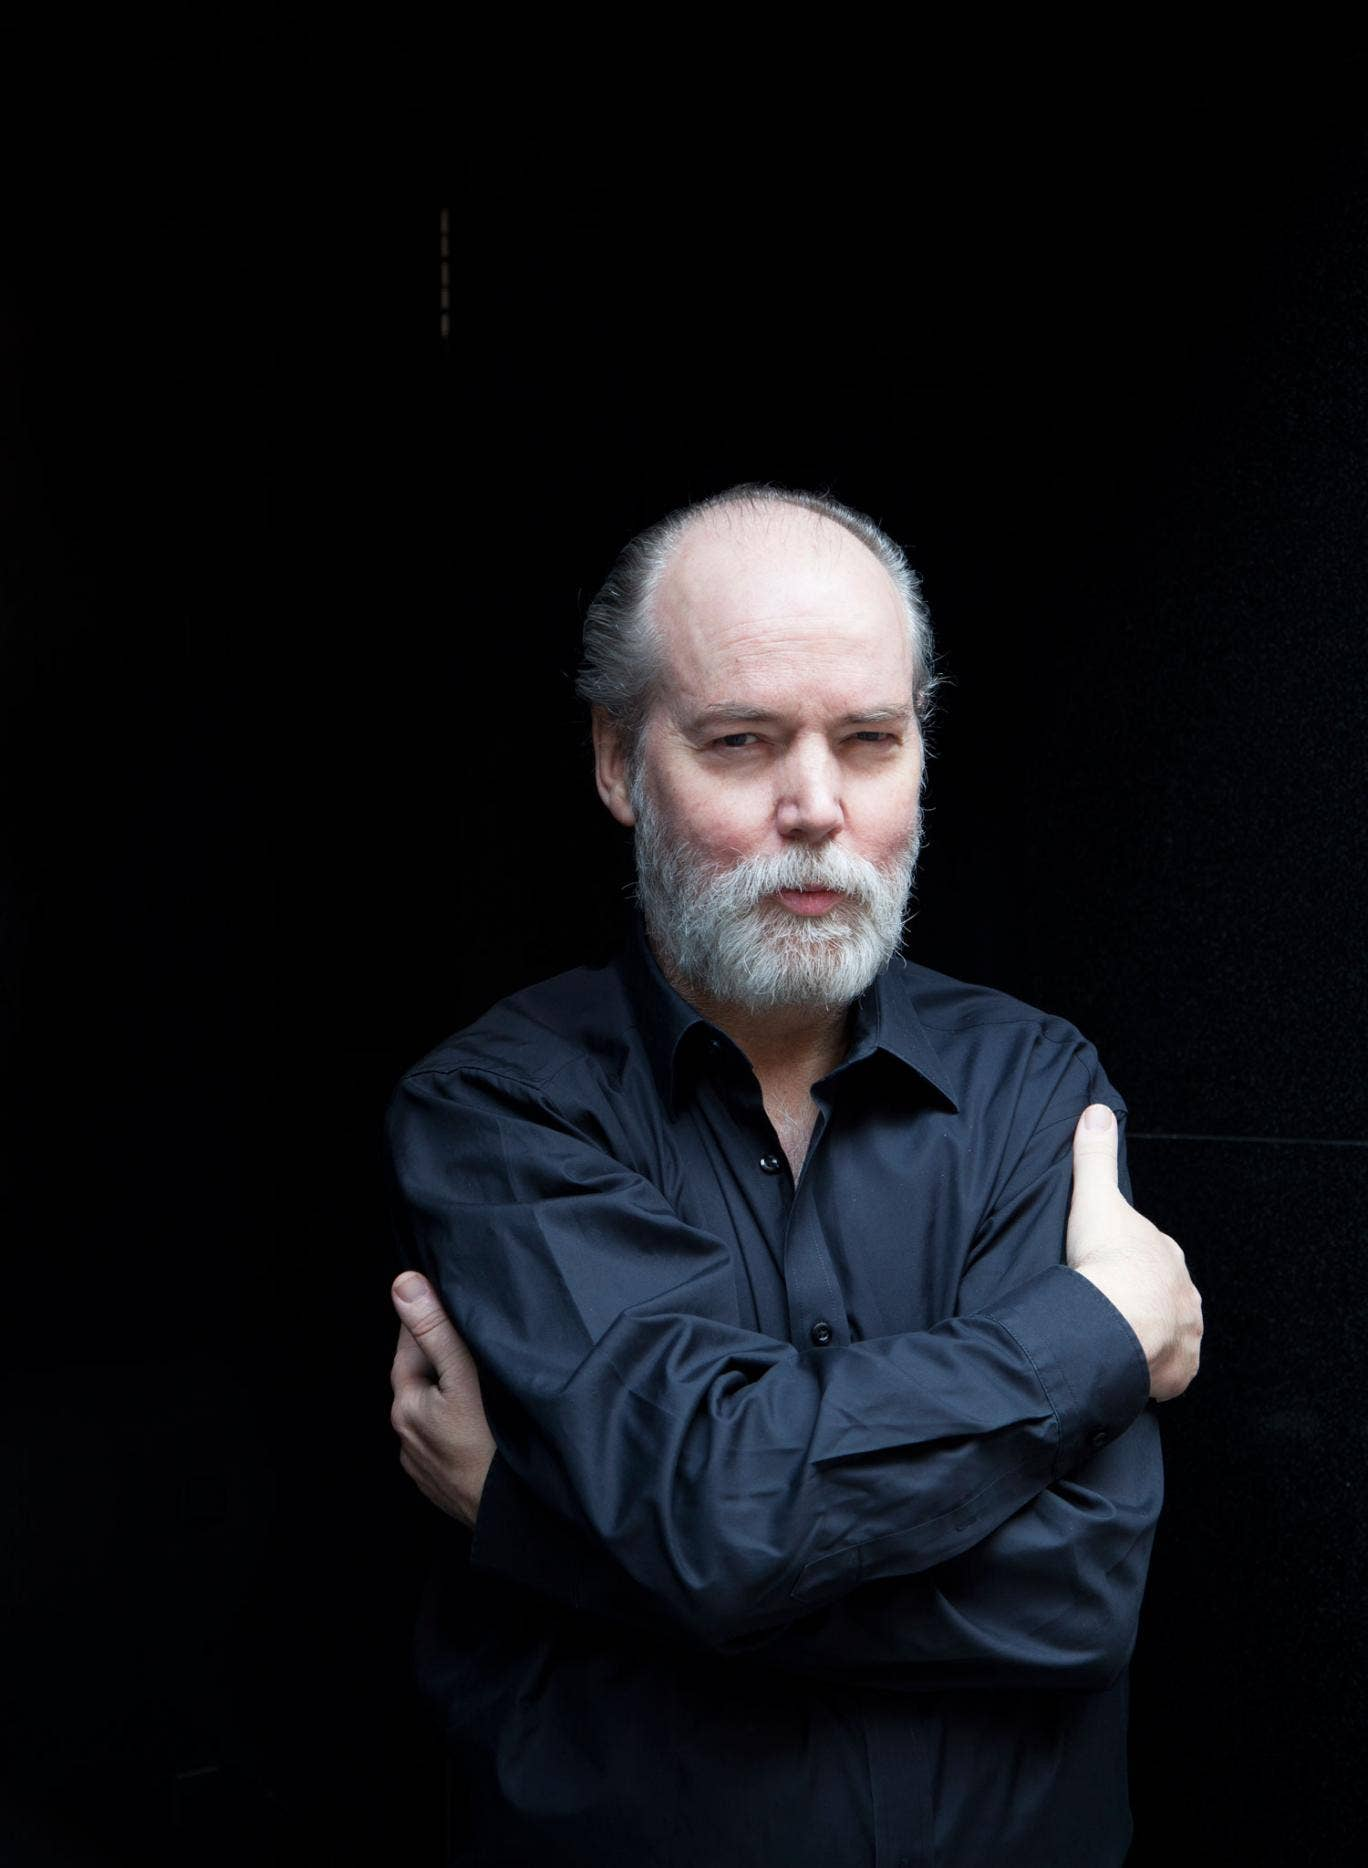 Coupland says: 'Every book published since the financial crisis has been worthy, heavy and depressing. I wanted to write a social commentary that could also be fun'